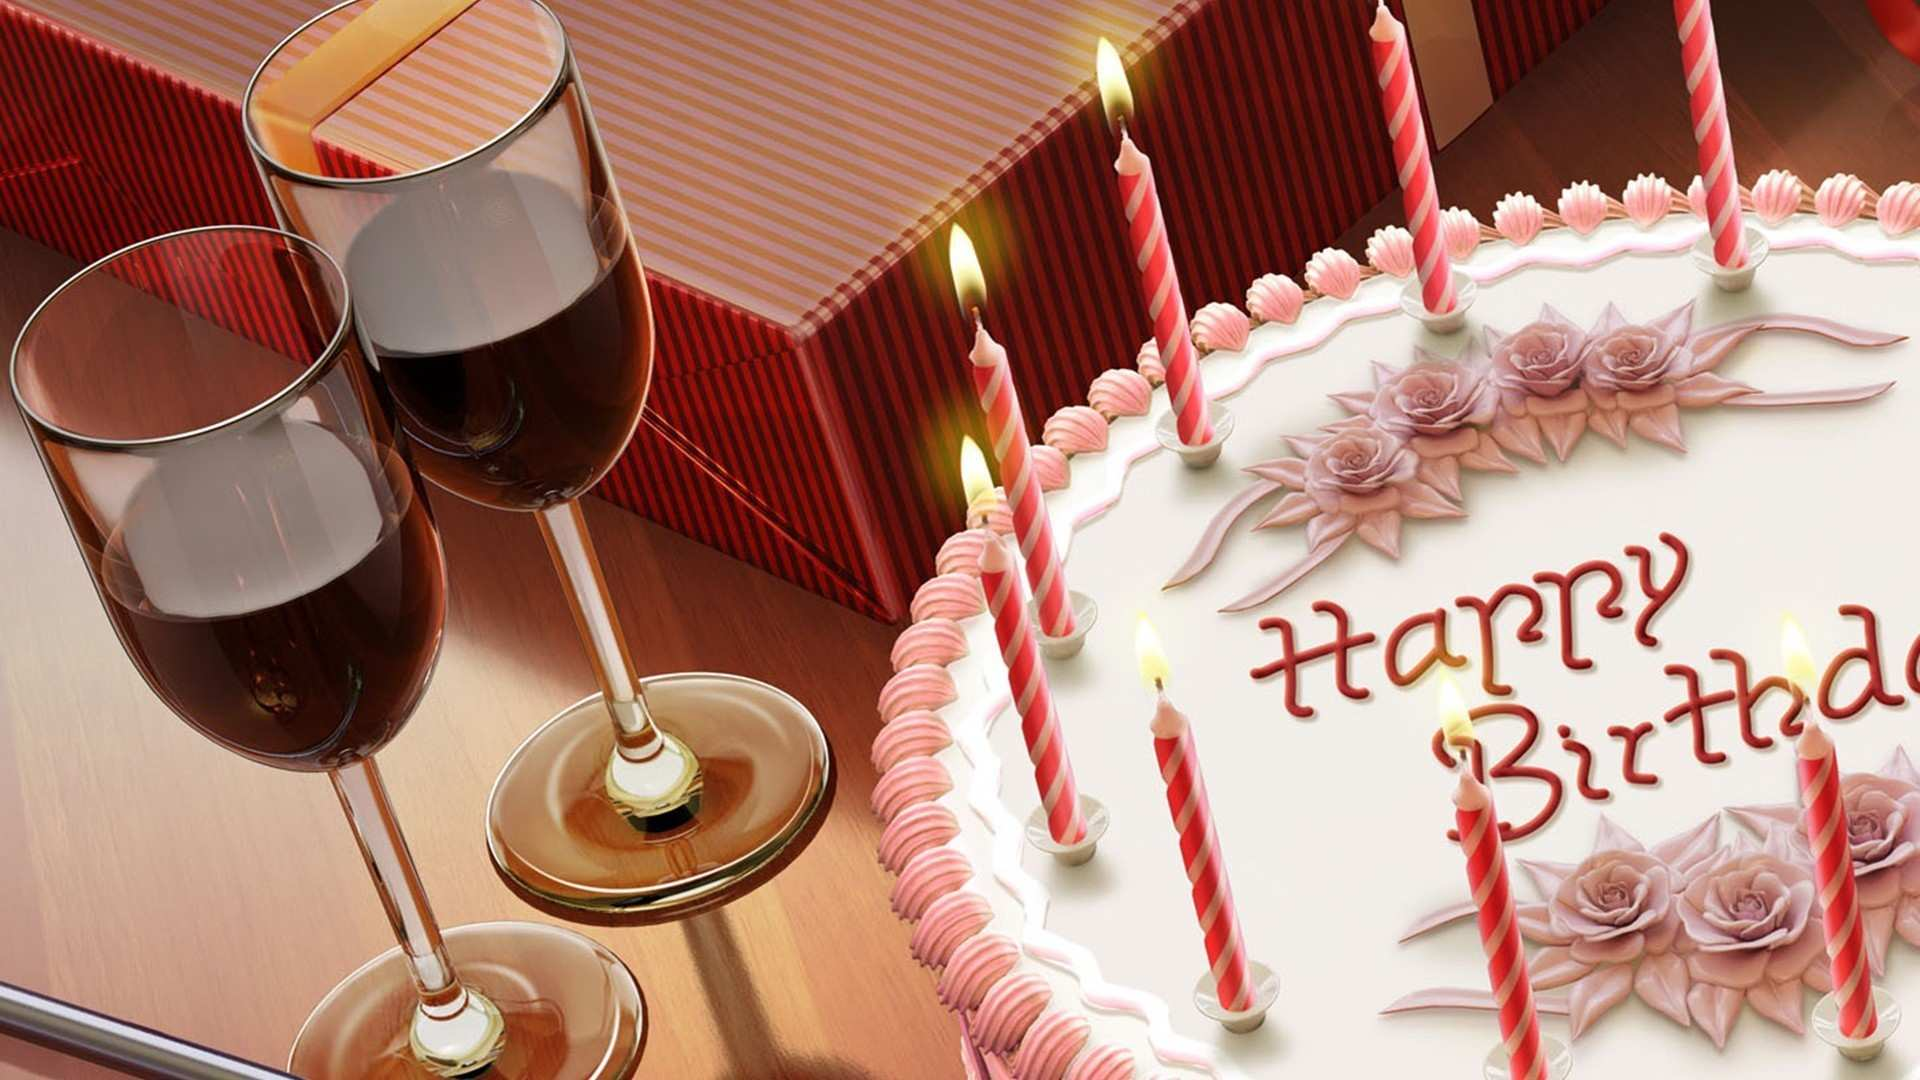 birthday images download hd ; download-happy-birthday-song-lovely-happy-birthday-hd-wallpapers-t31-of-download-happy-birthday-song